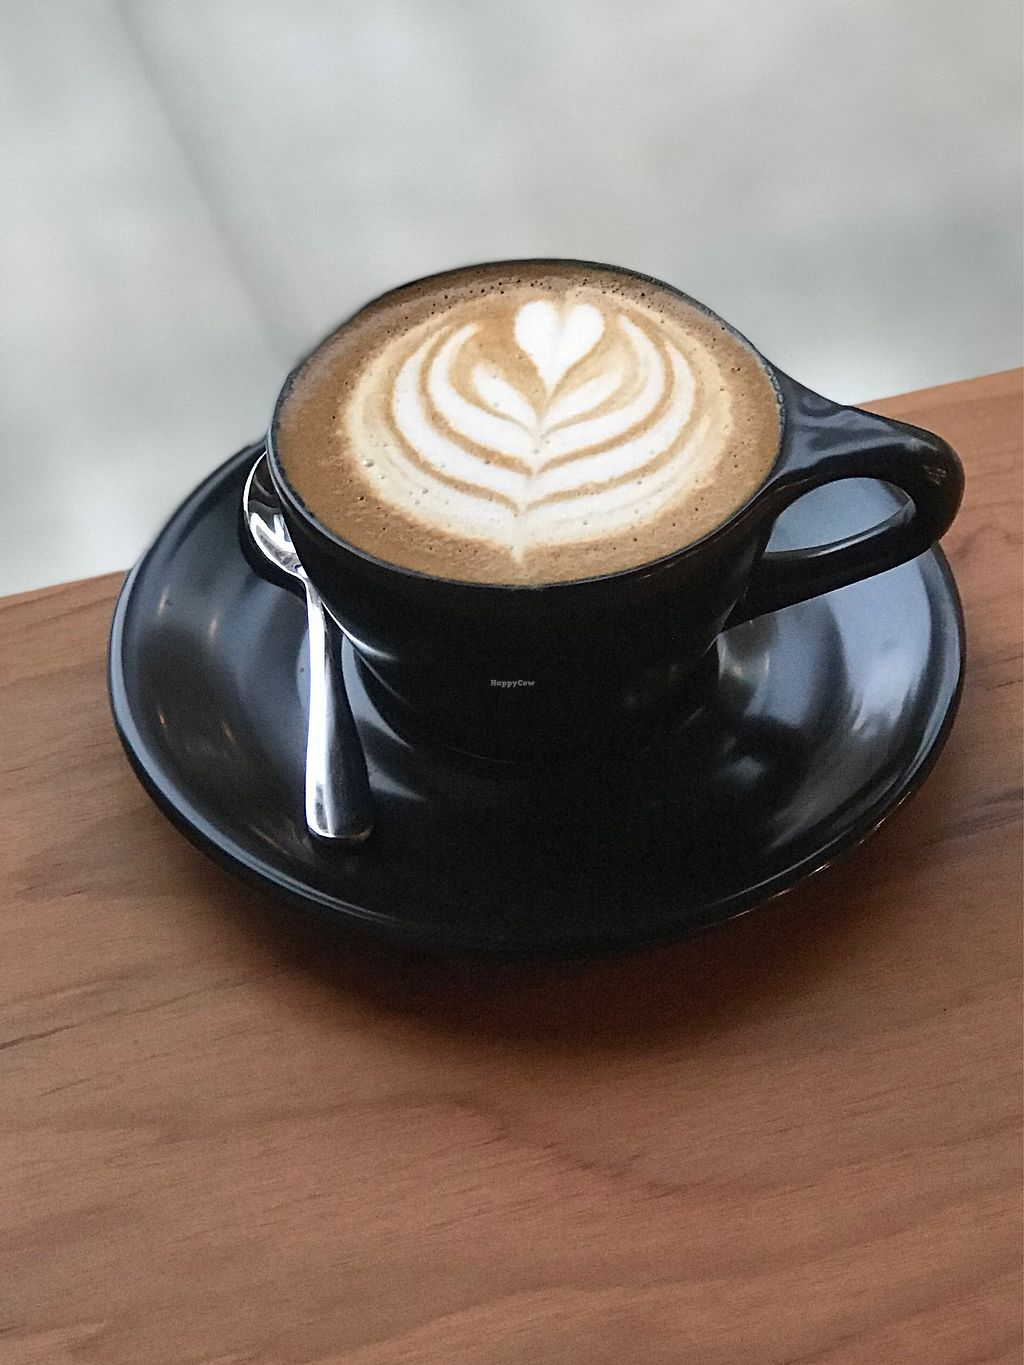 """Photo of Oracle Coffee Company  by <a href=""""/members/profile/OracleCoffee"""">OracleCoffee</a> <br/>Oatly cappuccino <br/> January 19, 2018  - <a href='/contact/abuse/image/99360/348200'>Report</a>"""